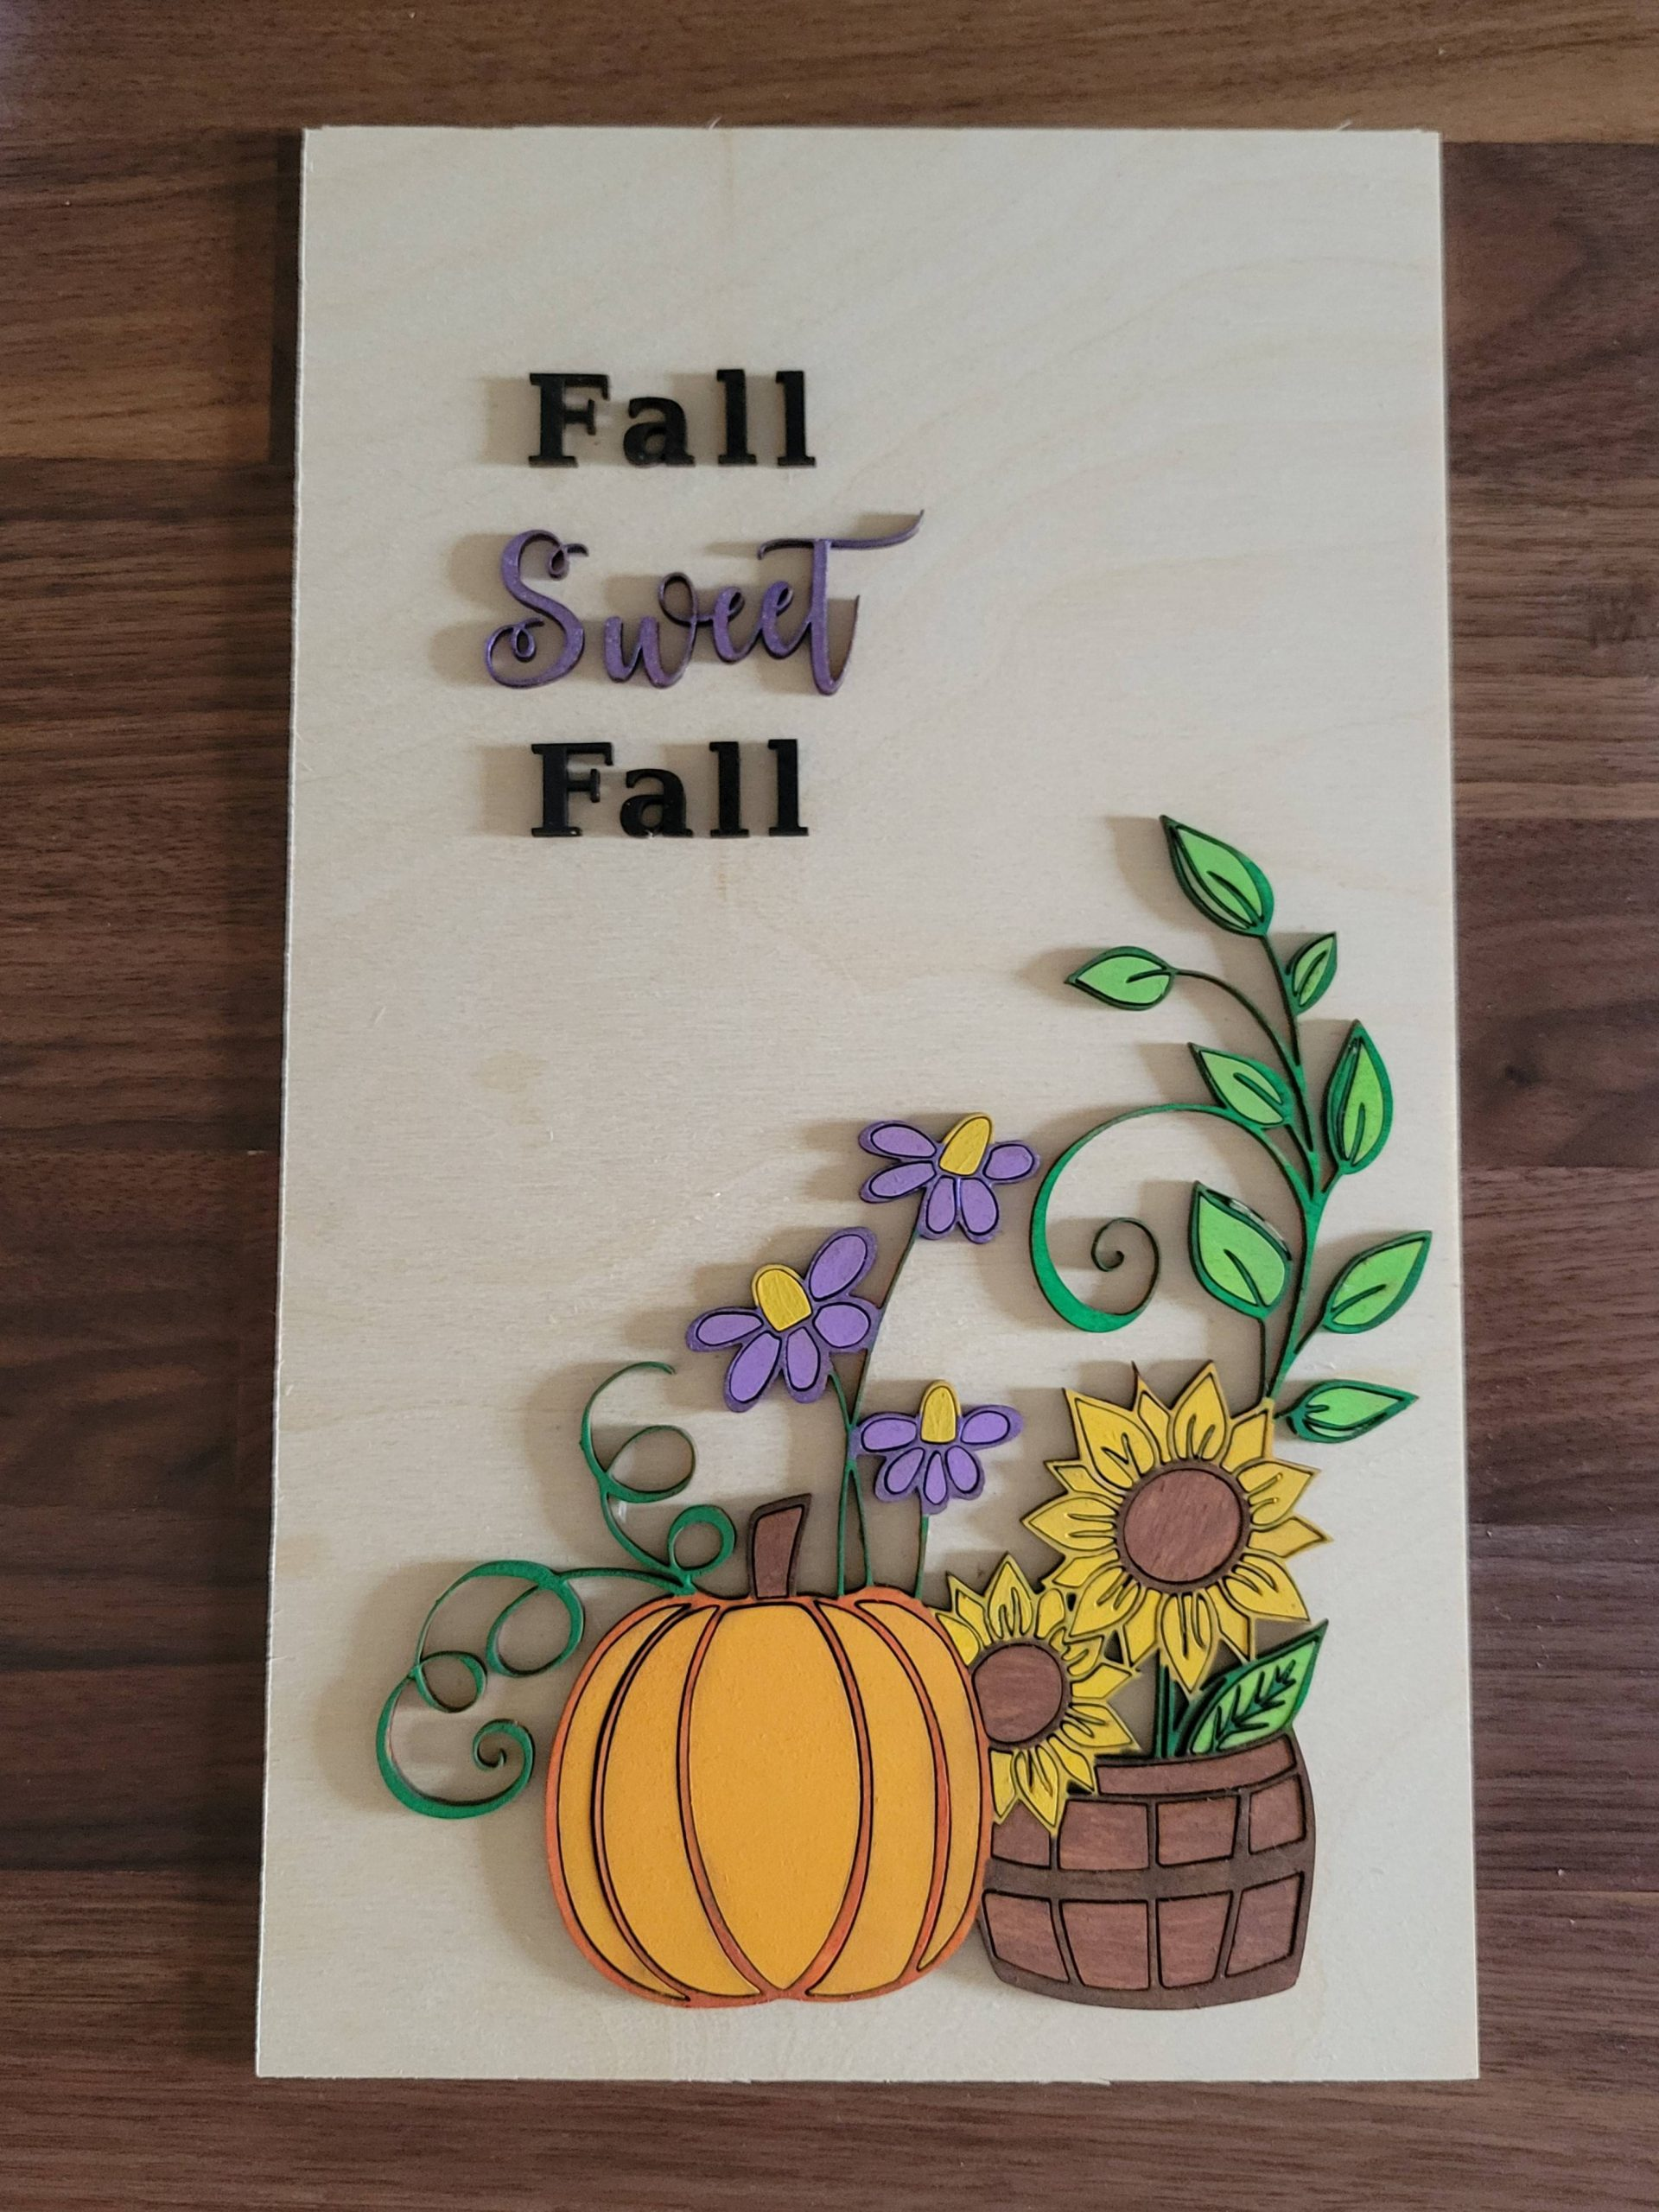 You are currently viewing Cute Fall Sign With Pumpkins And Sunflowers